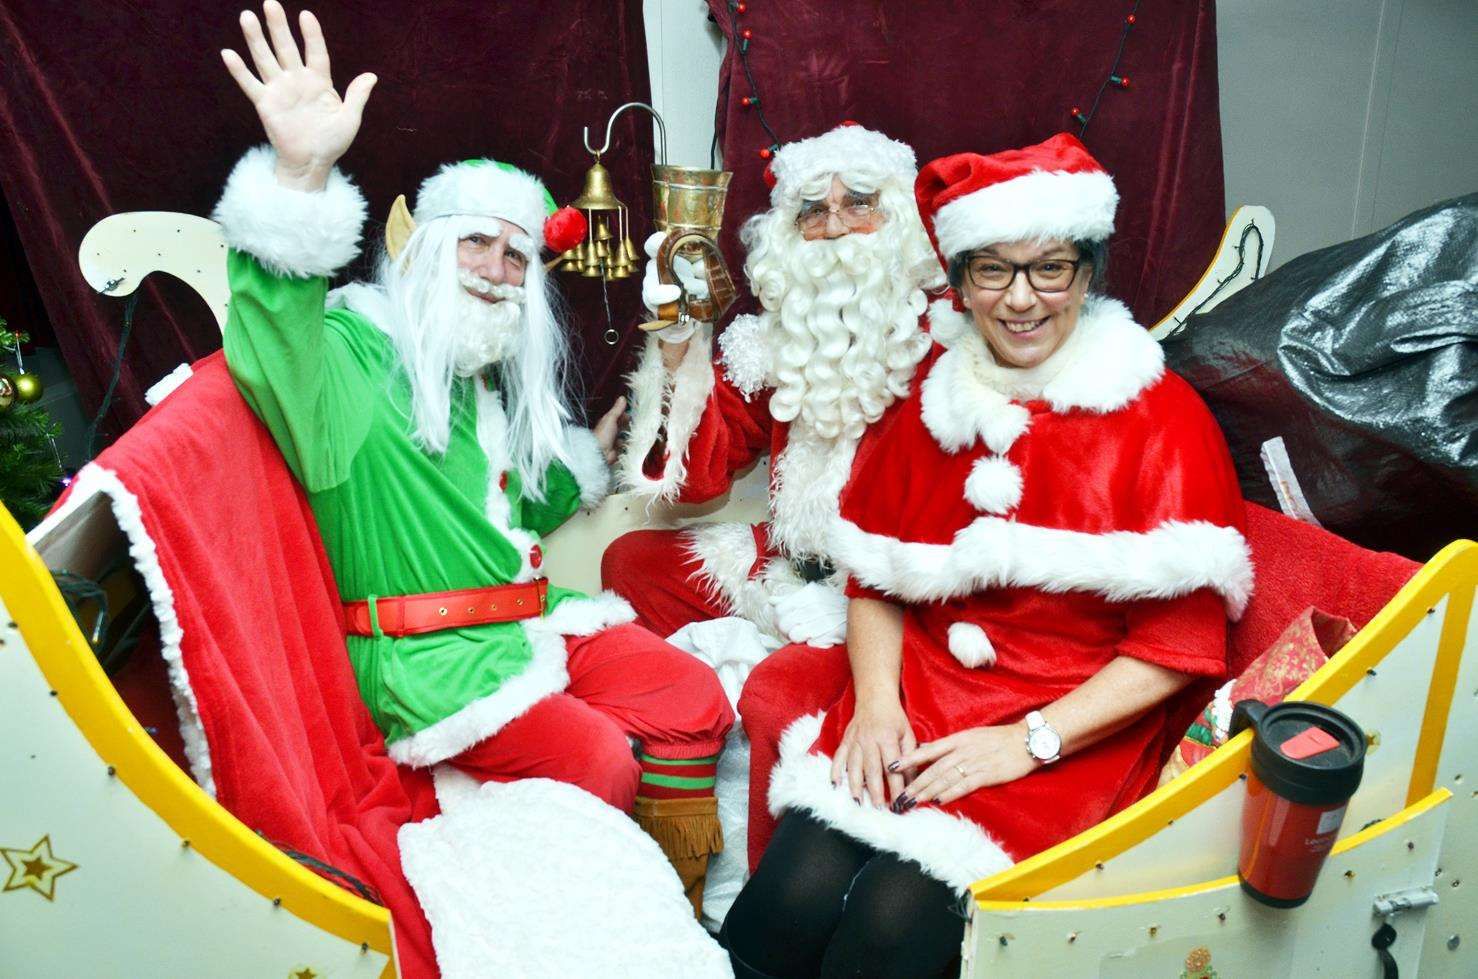 Santa, Mother Christmas and the 'Elf on the Shelf' fly into the fayre. (5475785)